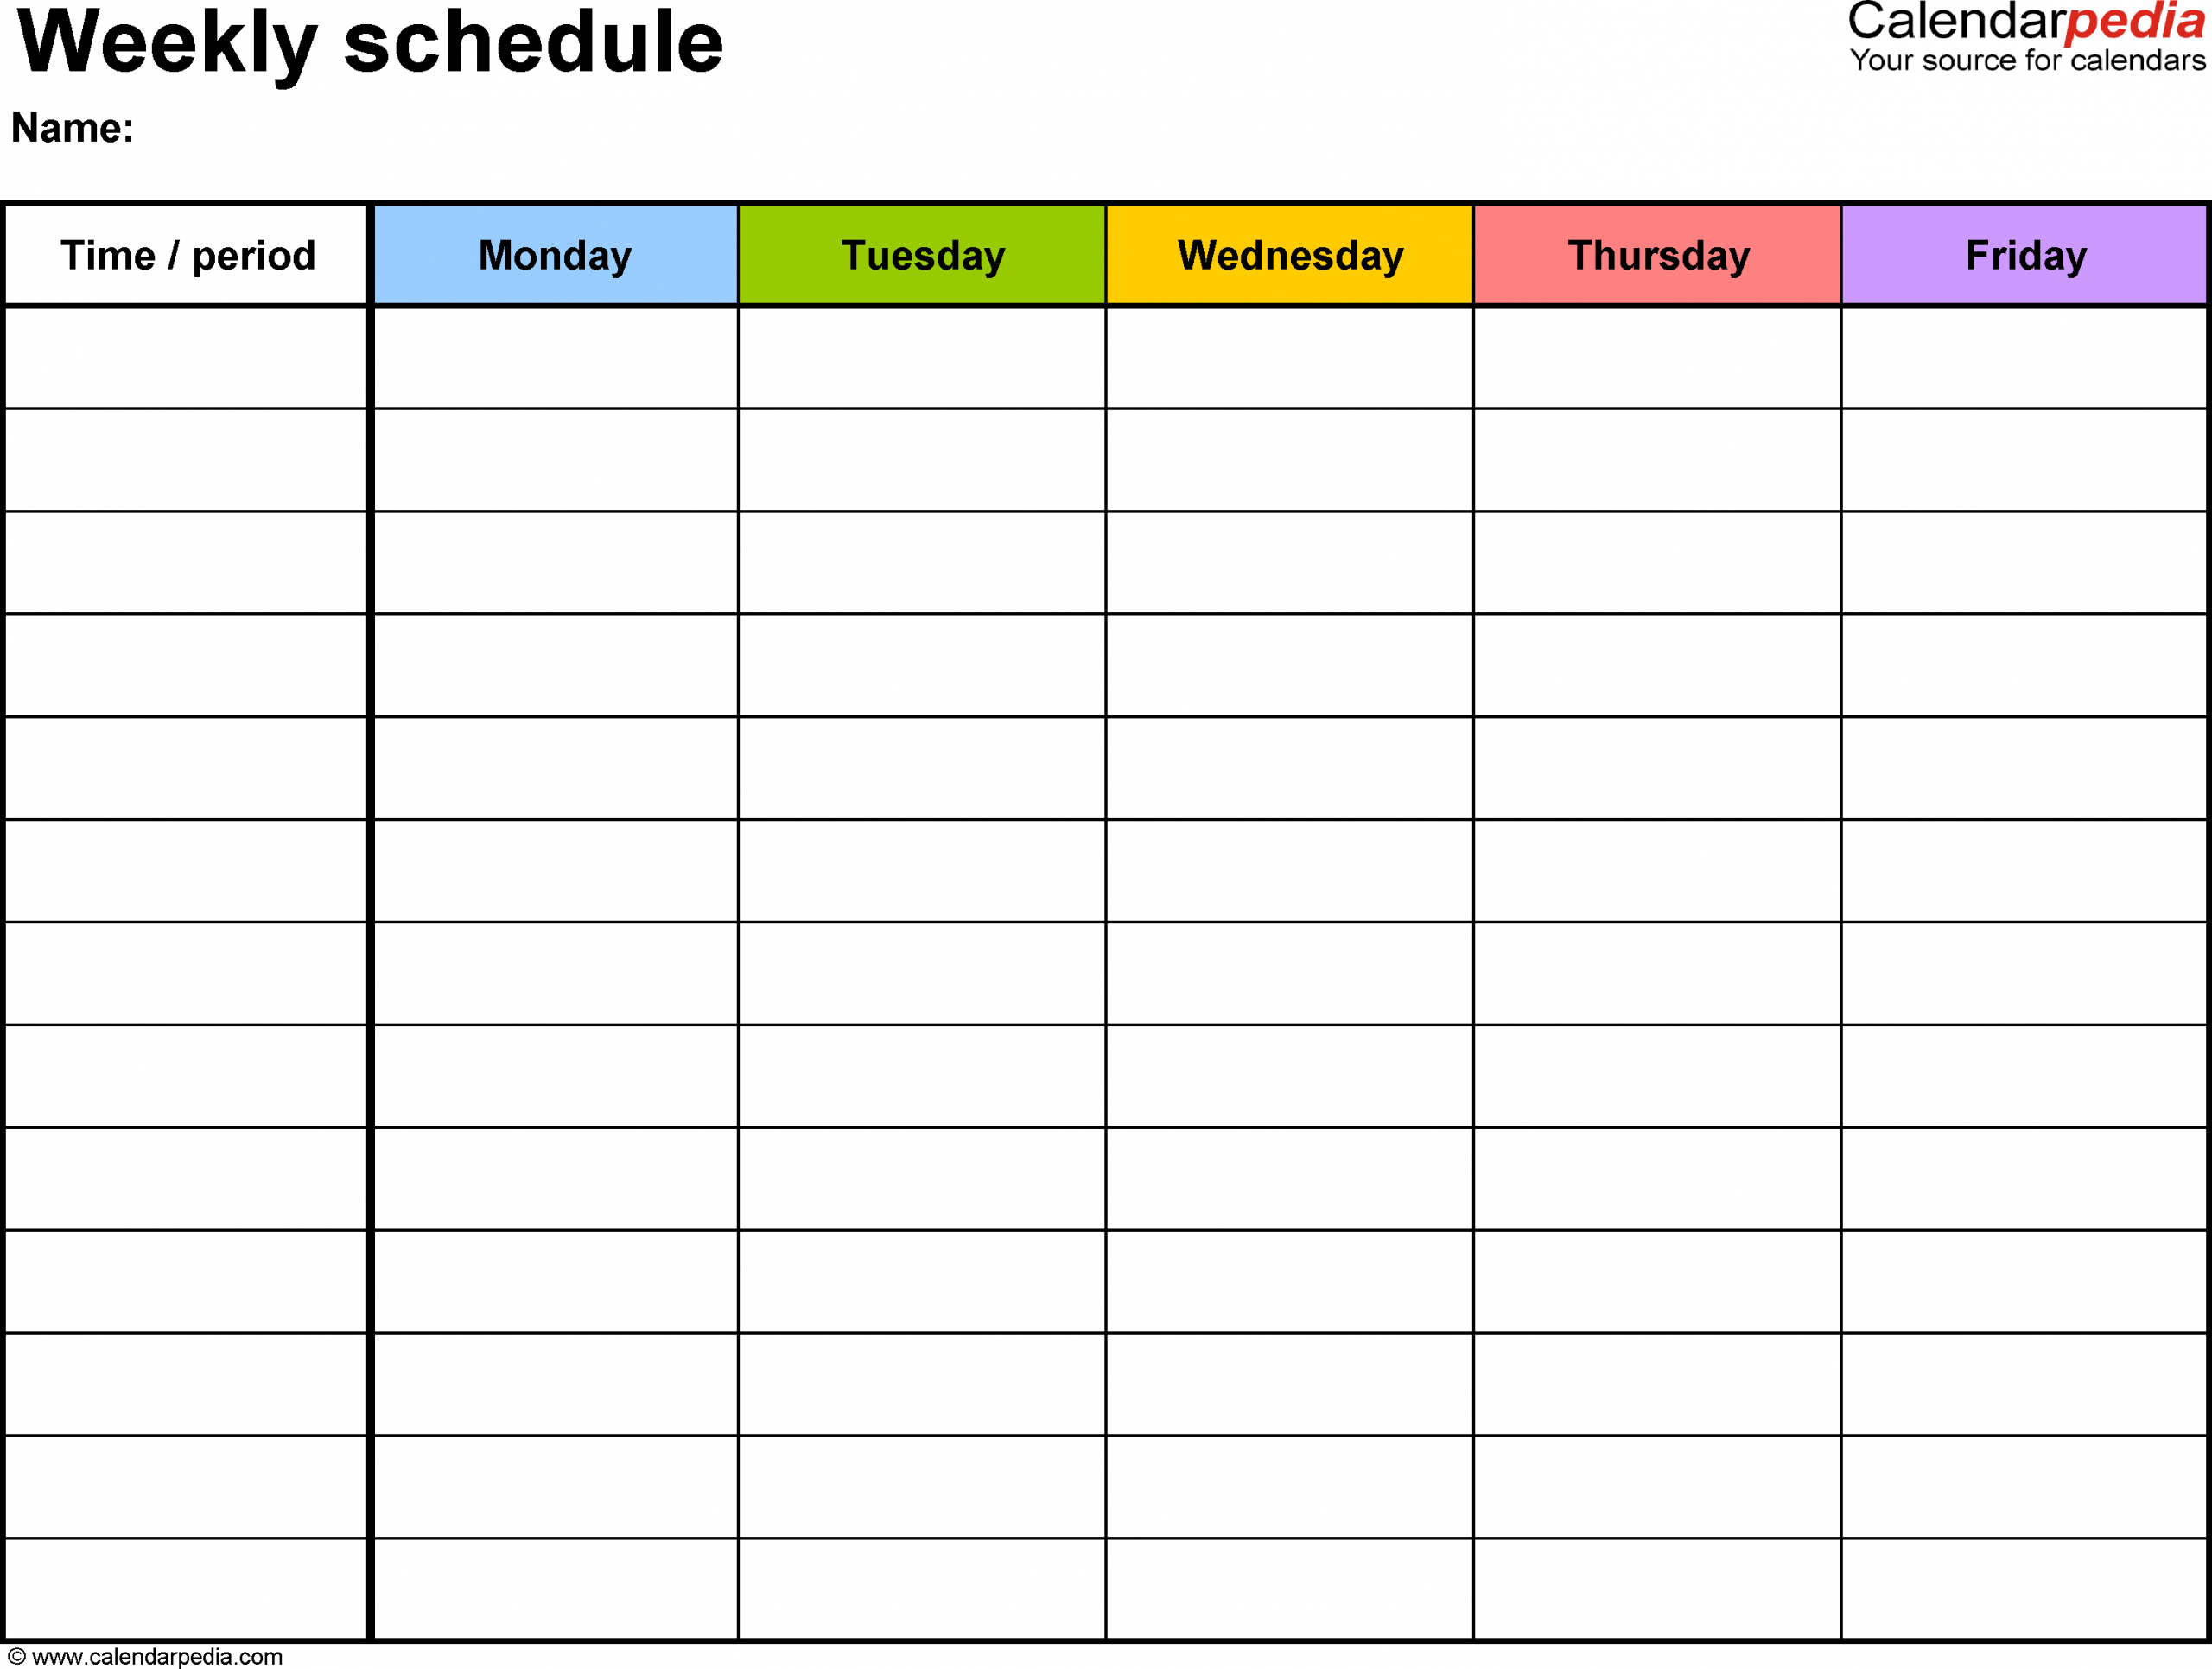 Weekly Calendar Template – Fotolip Blank Time Table For 7 Days